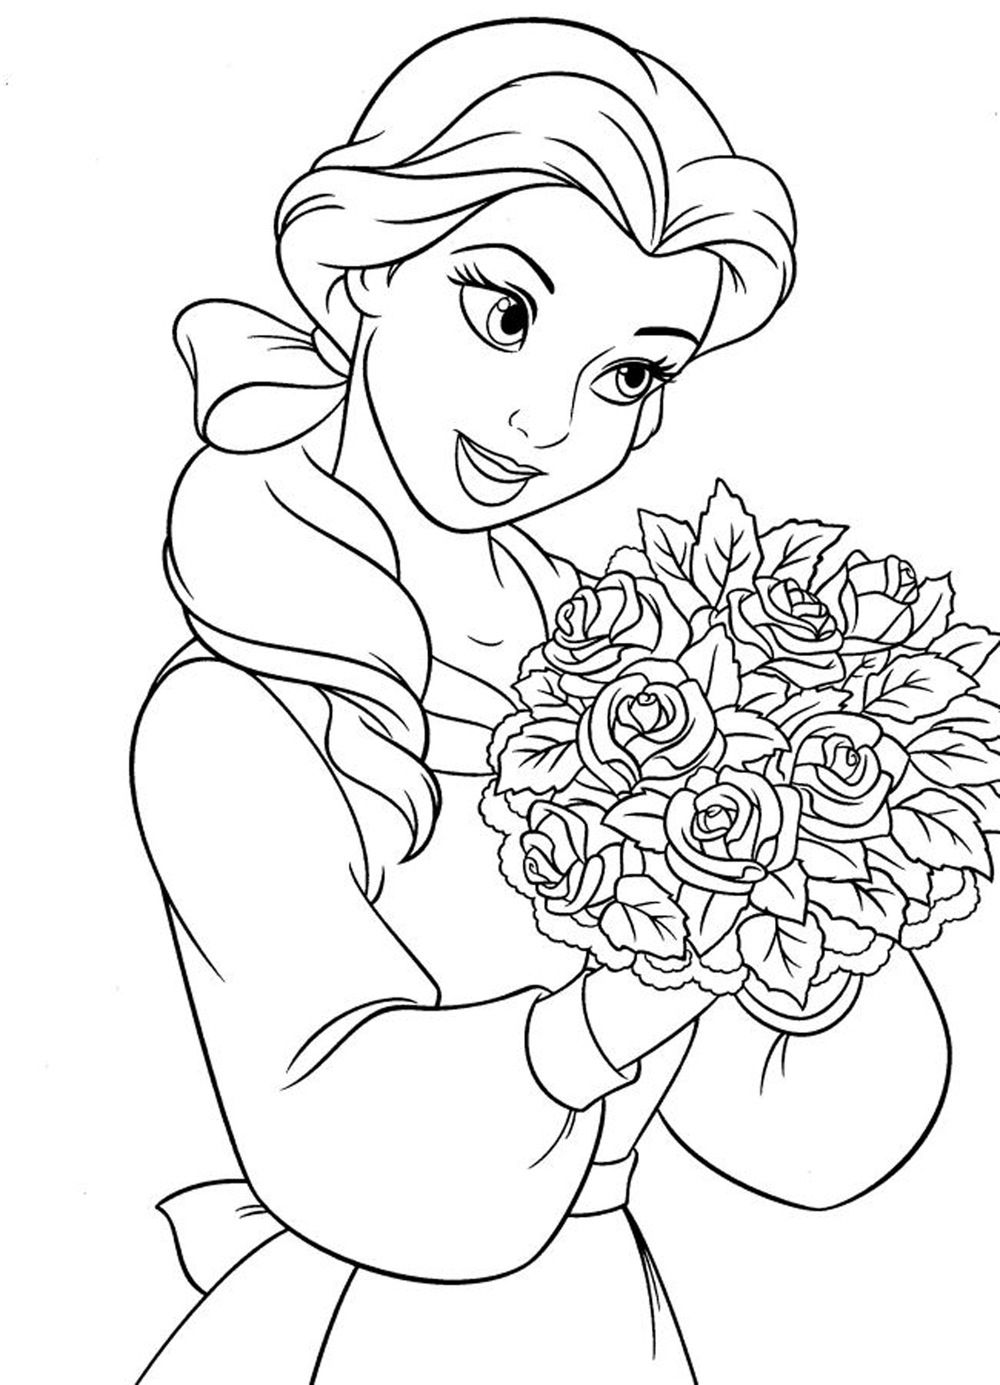 cartoon characters for colouring cartoon network coloring pages download and print for free colouring characters for cartoon